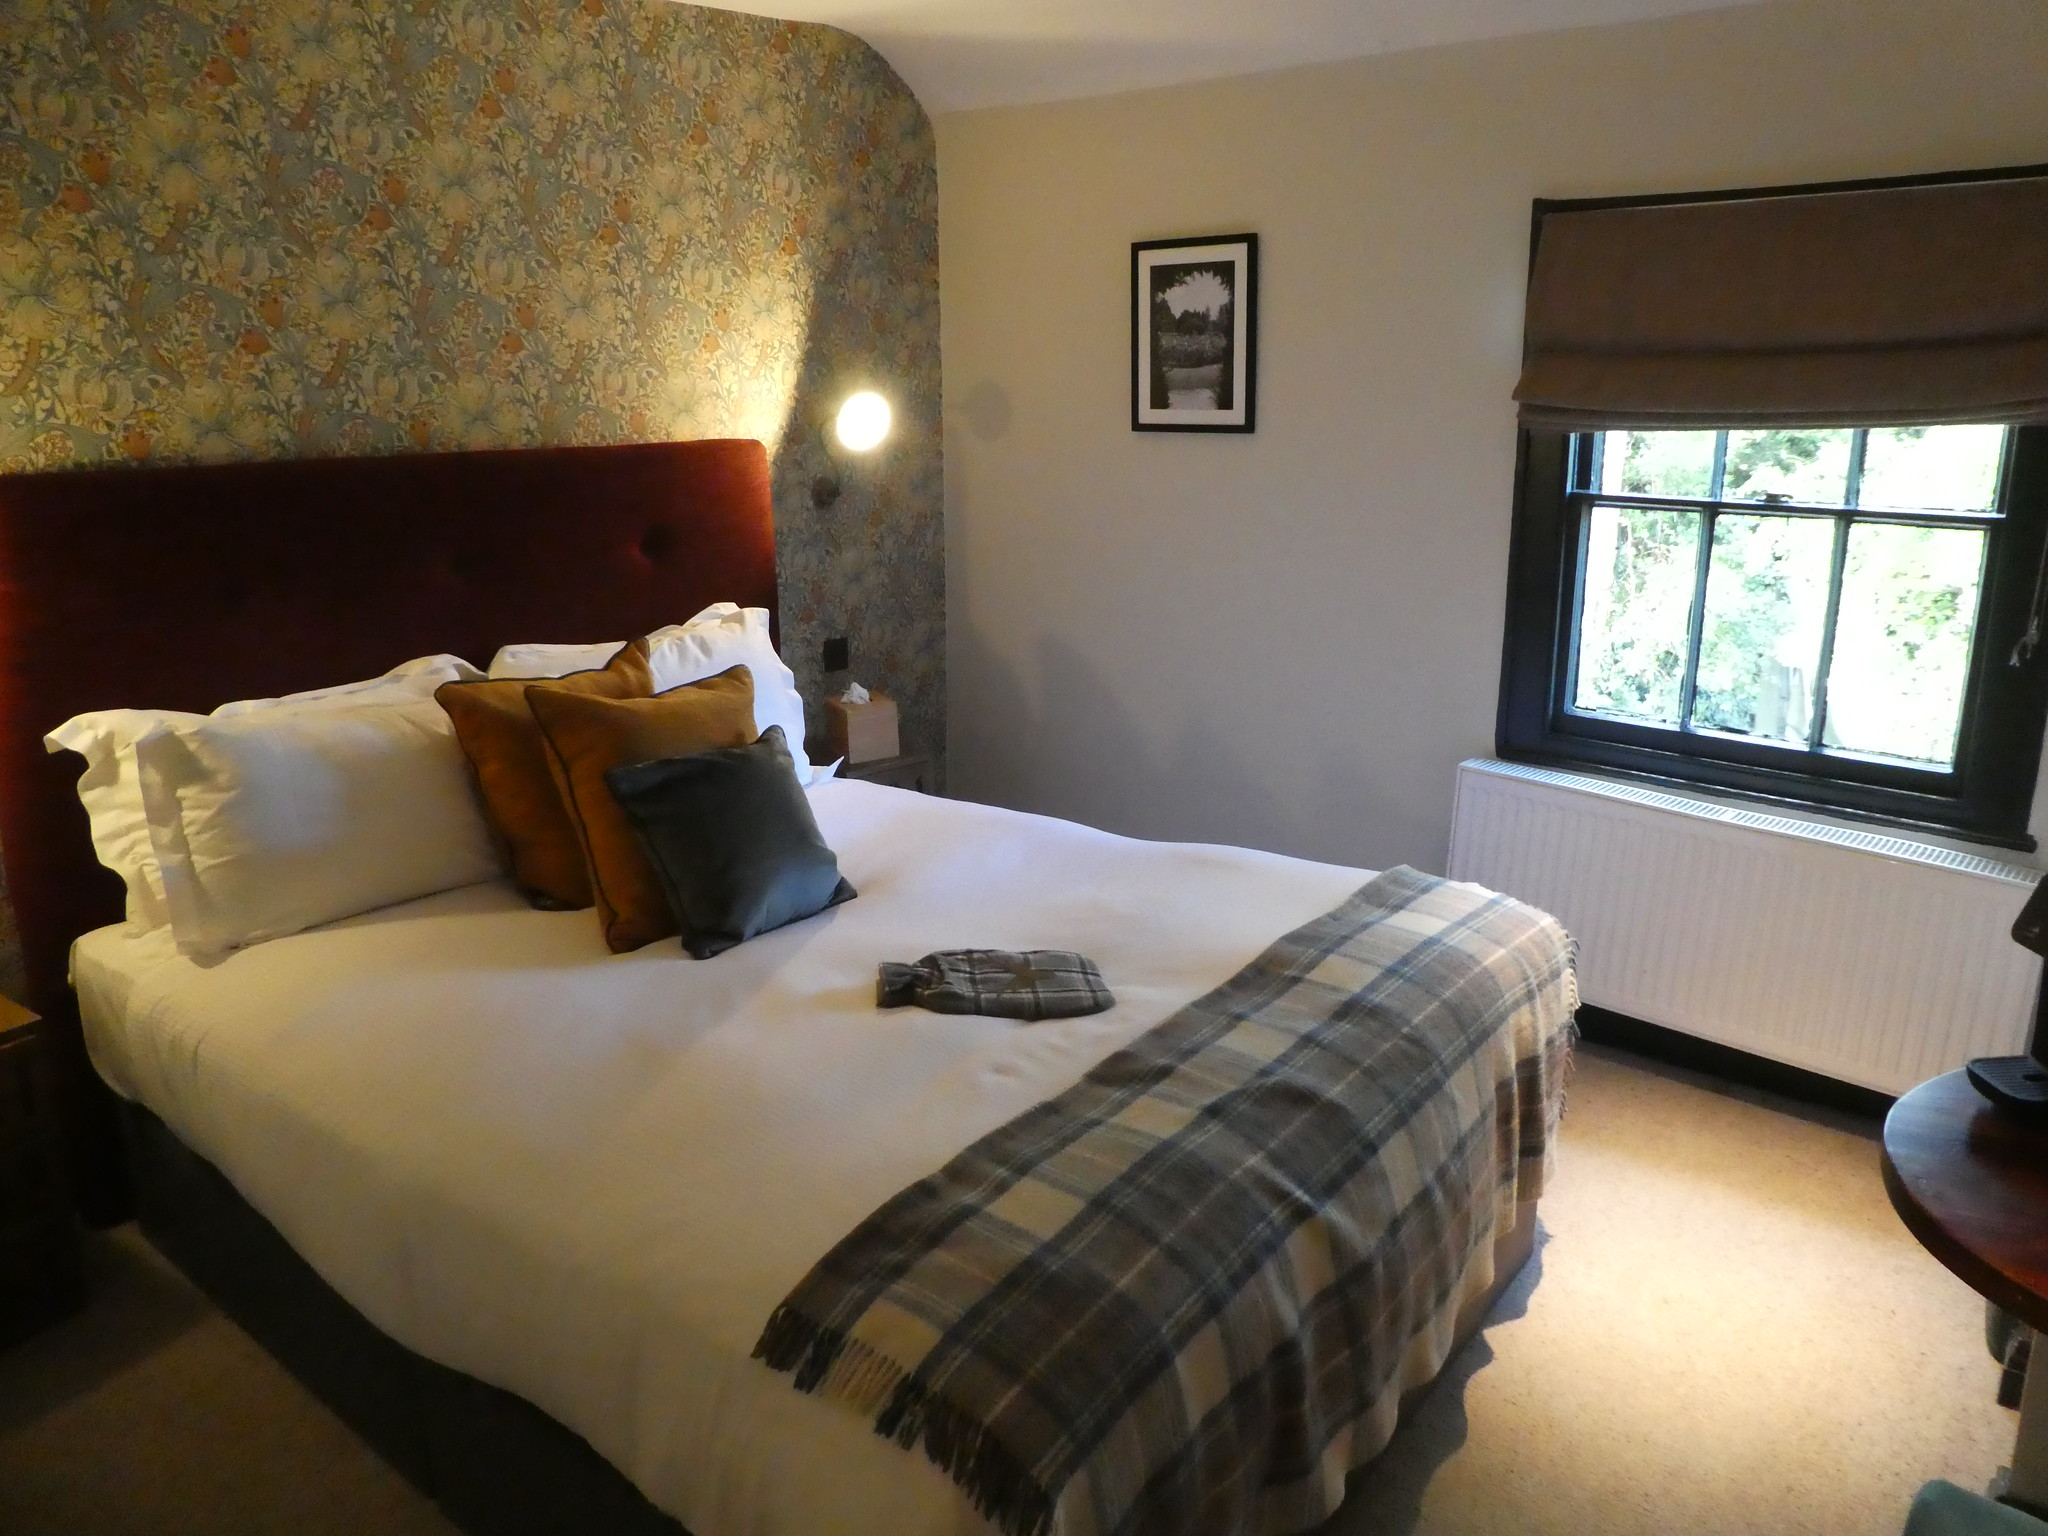 Hotel room, Pheasant Inn, Highclere